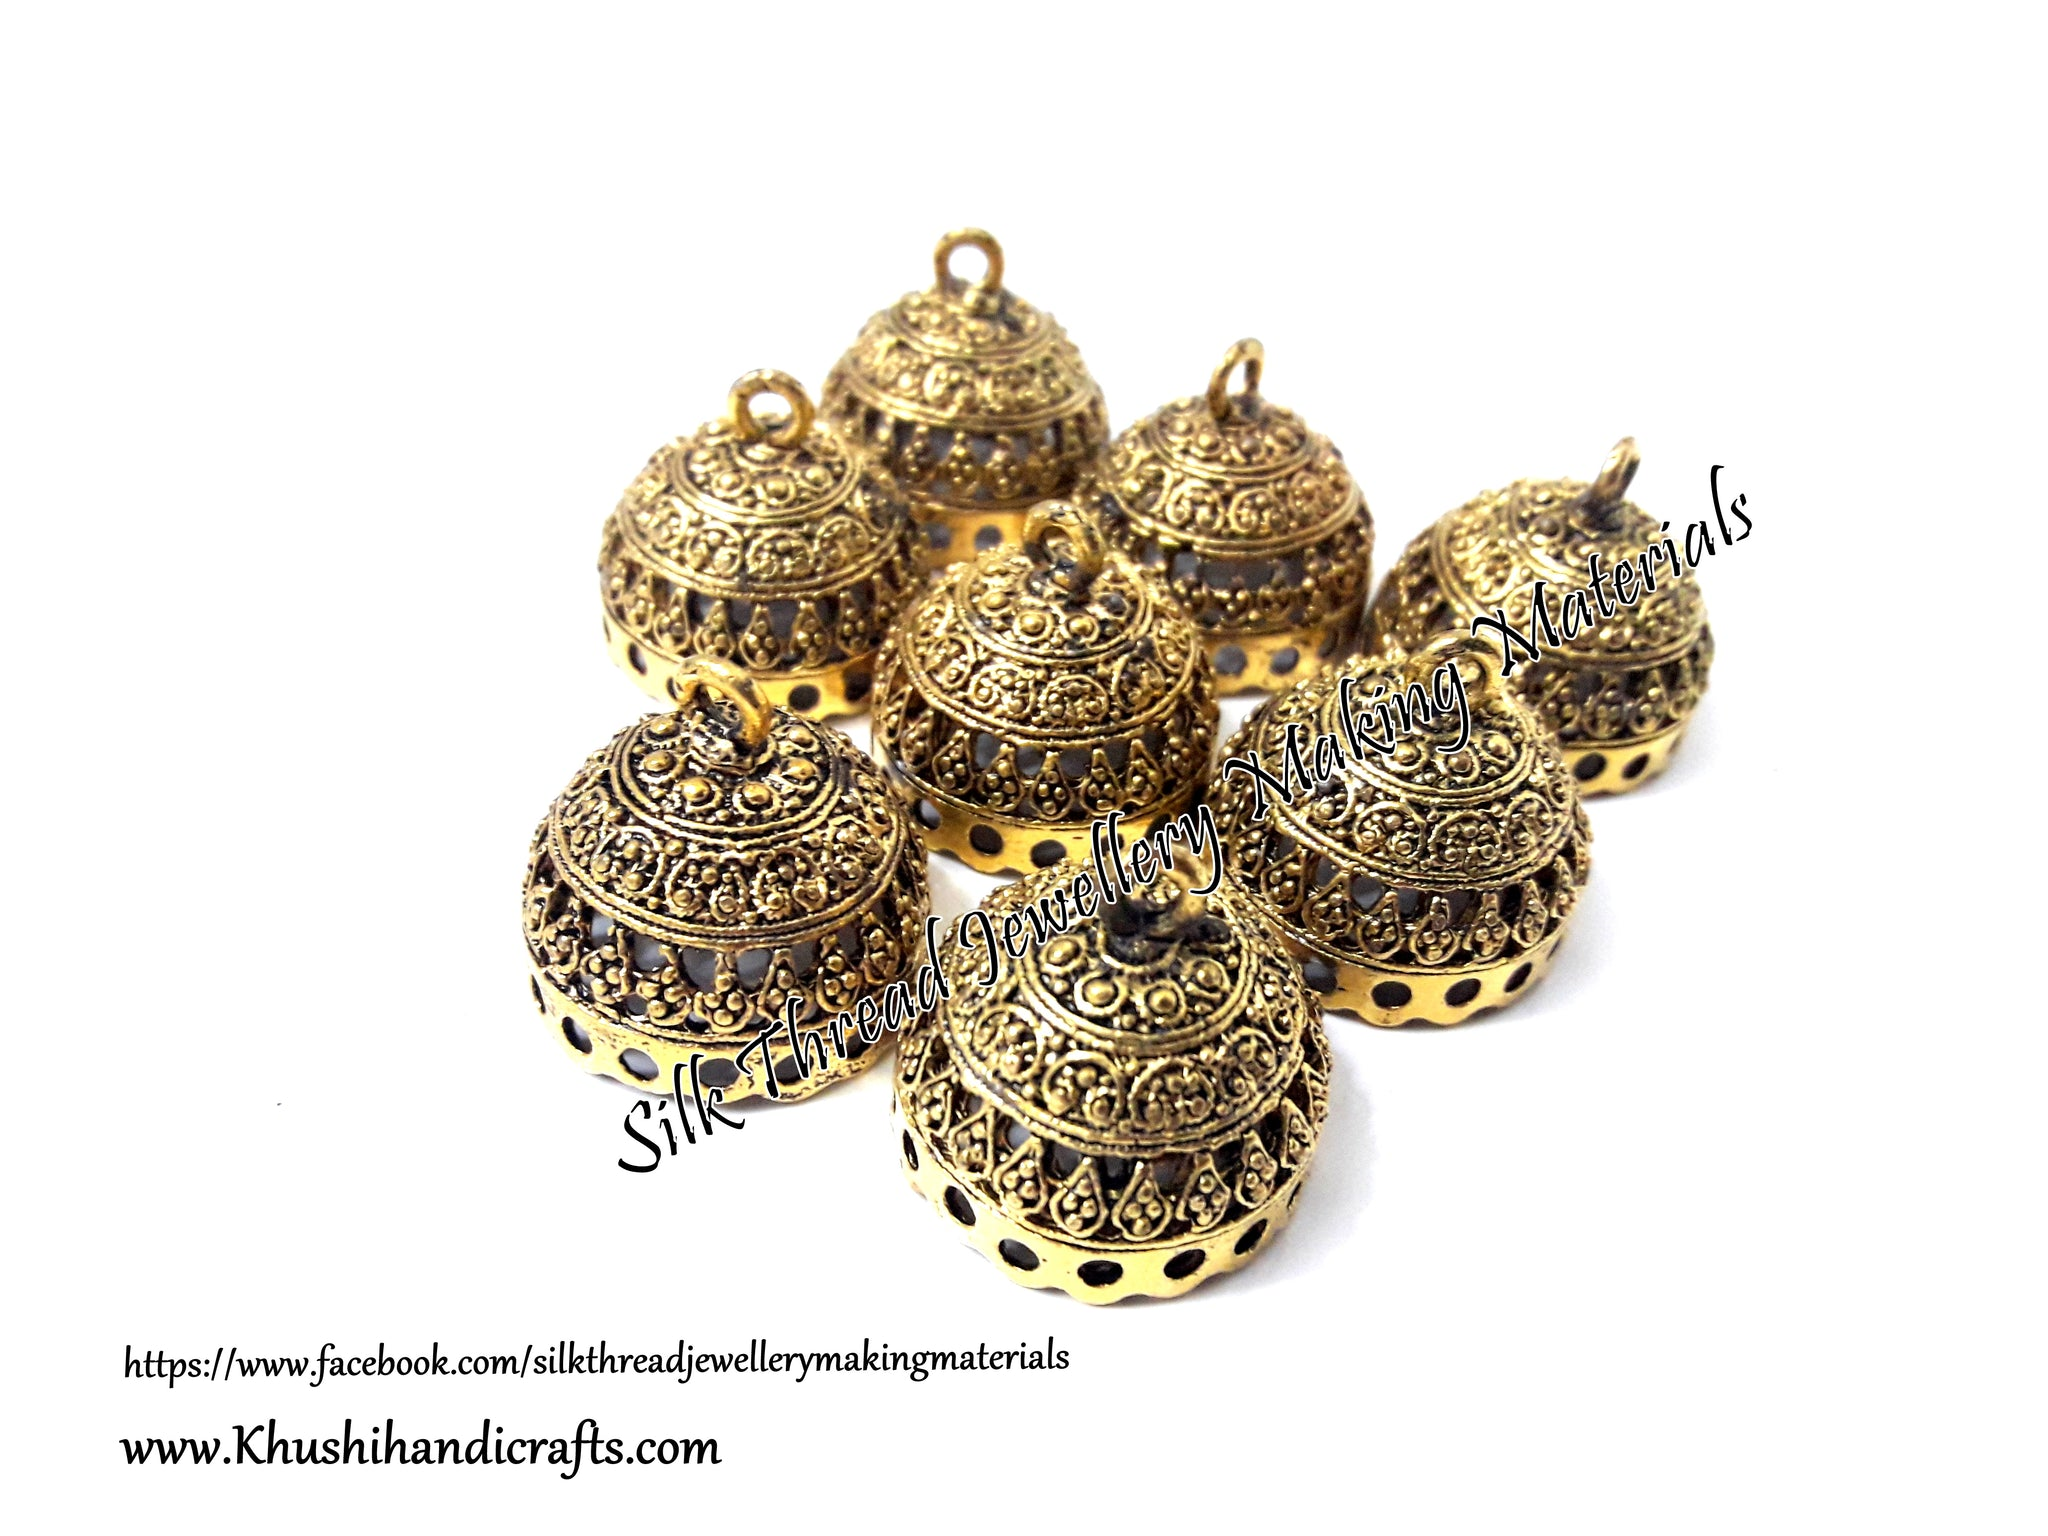 German Silver Jhumka Base in antique Gold